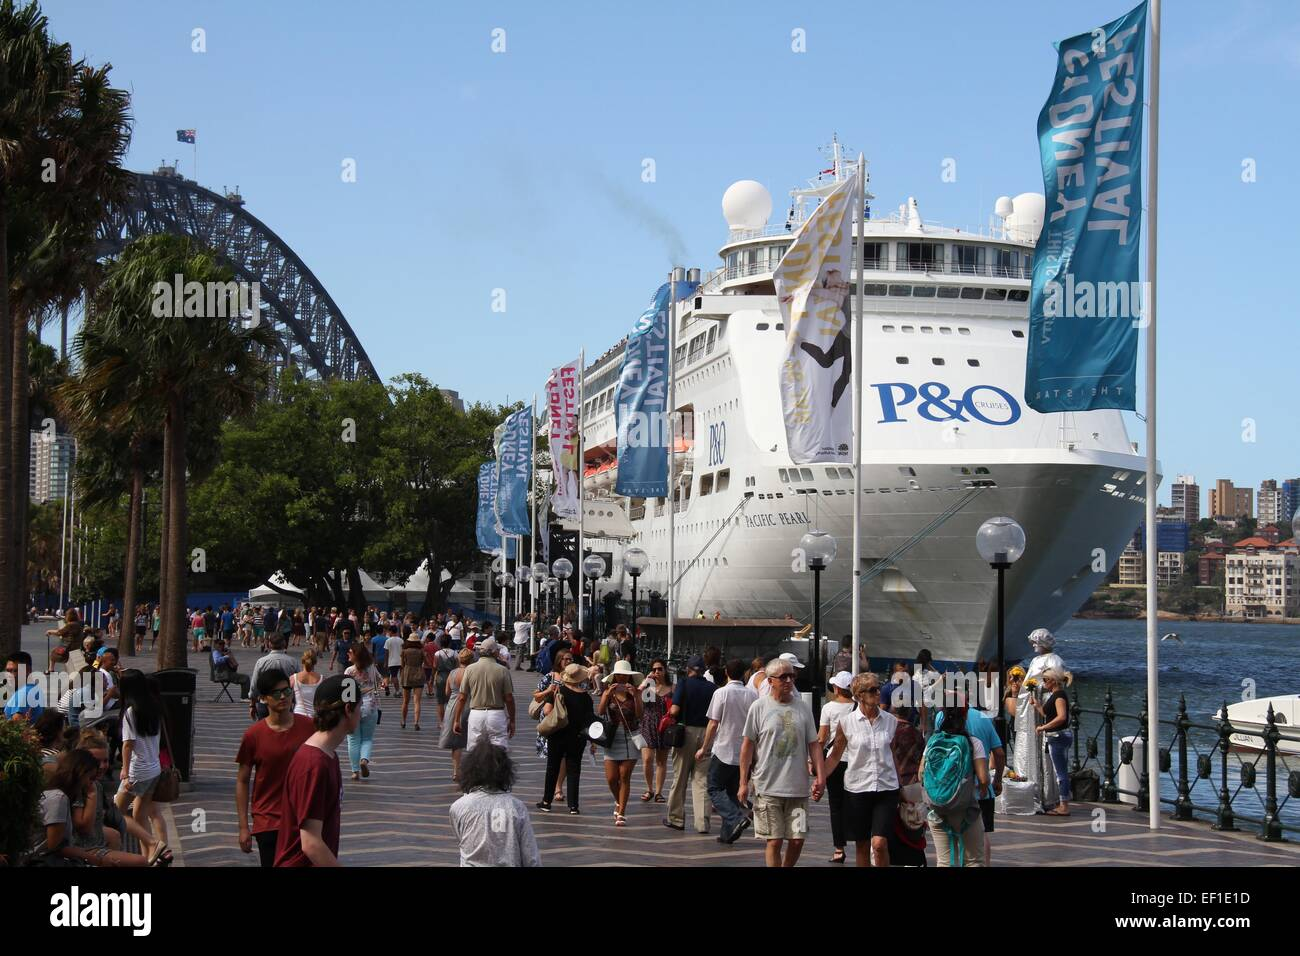 The P&O Pacific Pearl cruise ship moored at the Overseas Passenger Terminal at The Rocks – Sydney, Australia. - Stock Image